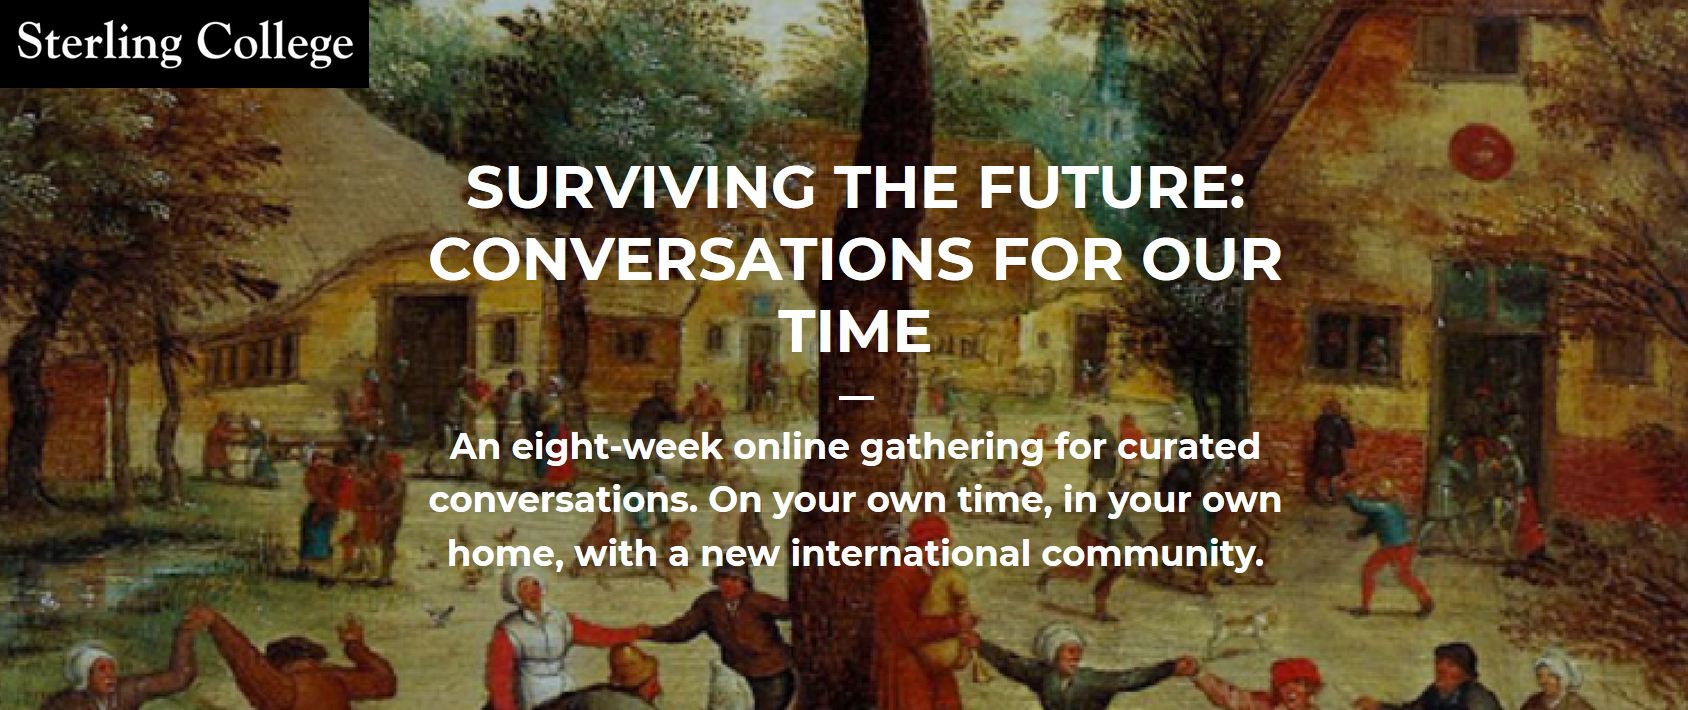 Image for 'Surviving the Future: Conversation for Our Time' online course